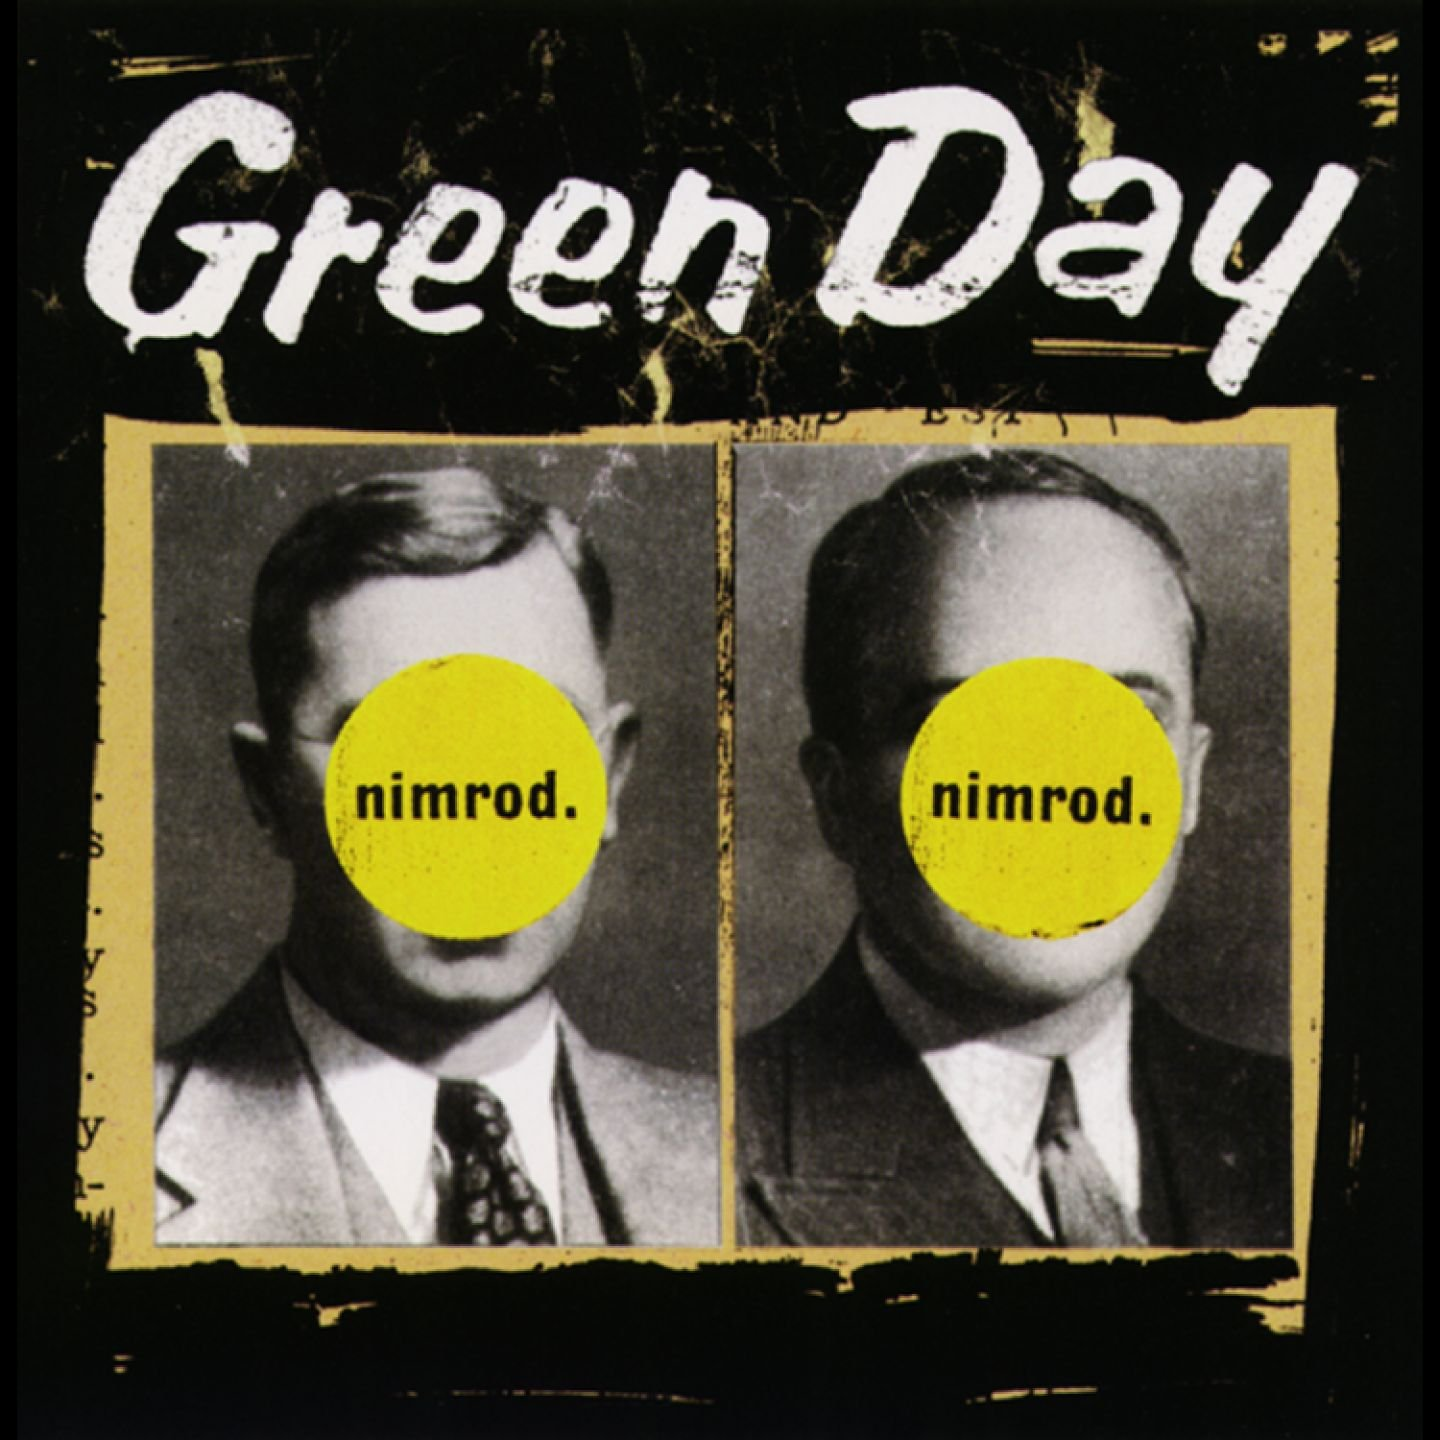 """A rocking acoustic shuffle with a horn section, this song kind of fit in with the ska music that was dominating the airwaves. Billie Joe Armstrong told Billboard, """"It would be funny for a bunch of macho fraternity guys to be singing along and, little do they know, the song's about being in drag."""""""